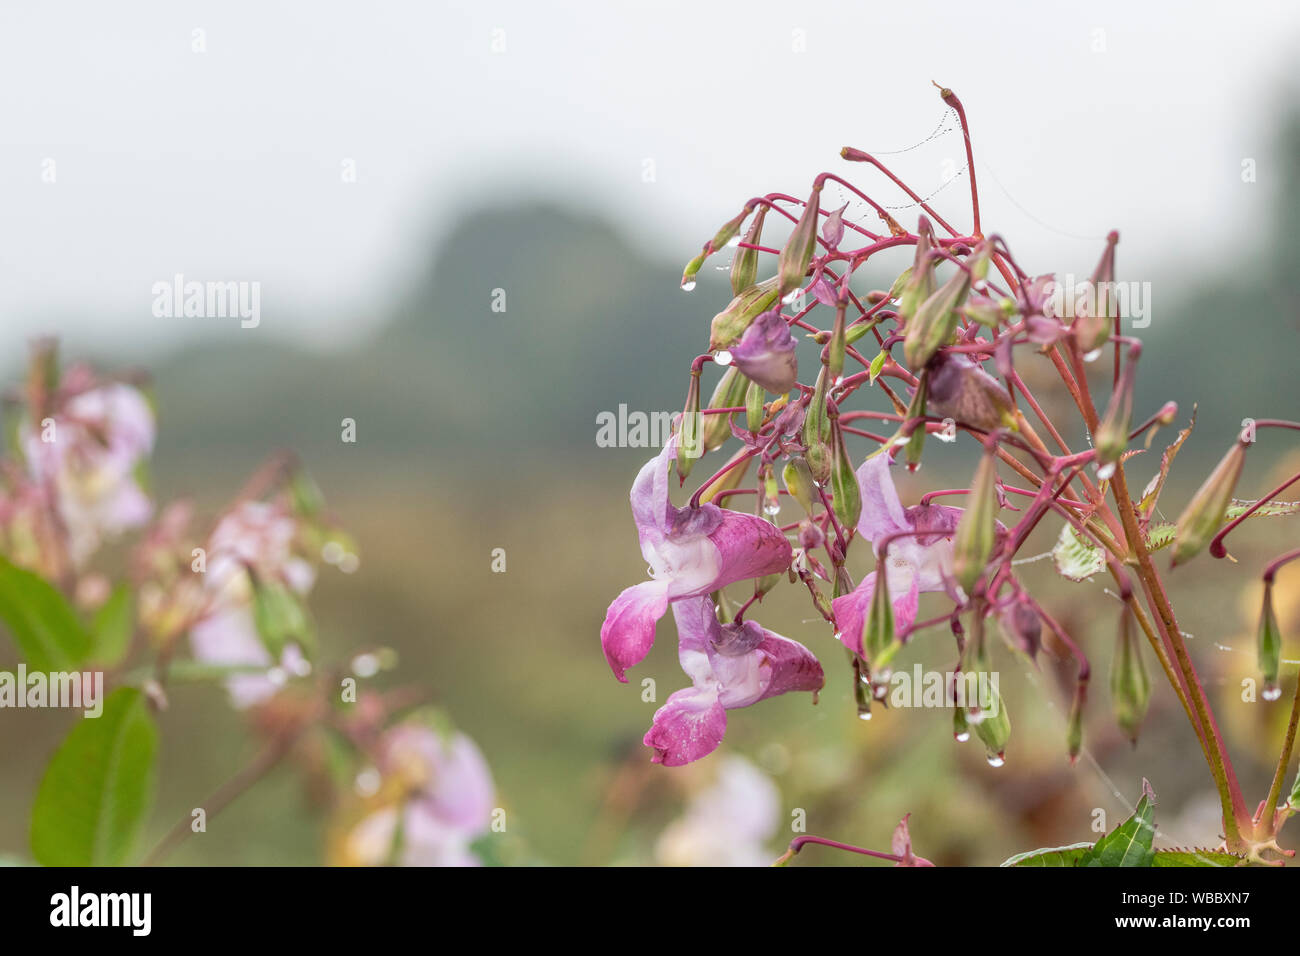 Flowers and upper leaves of troublesome Himalayan Balsam / Impatiens glandulifera. Likes damp soils / ground, riversides, river banks, hygrophilous. Stock Photo